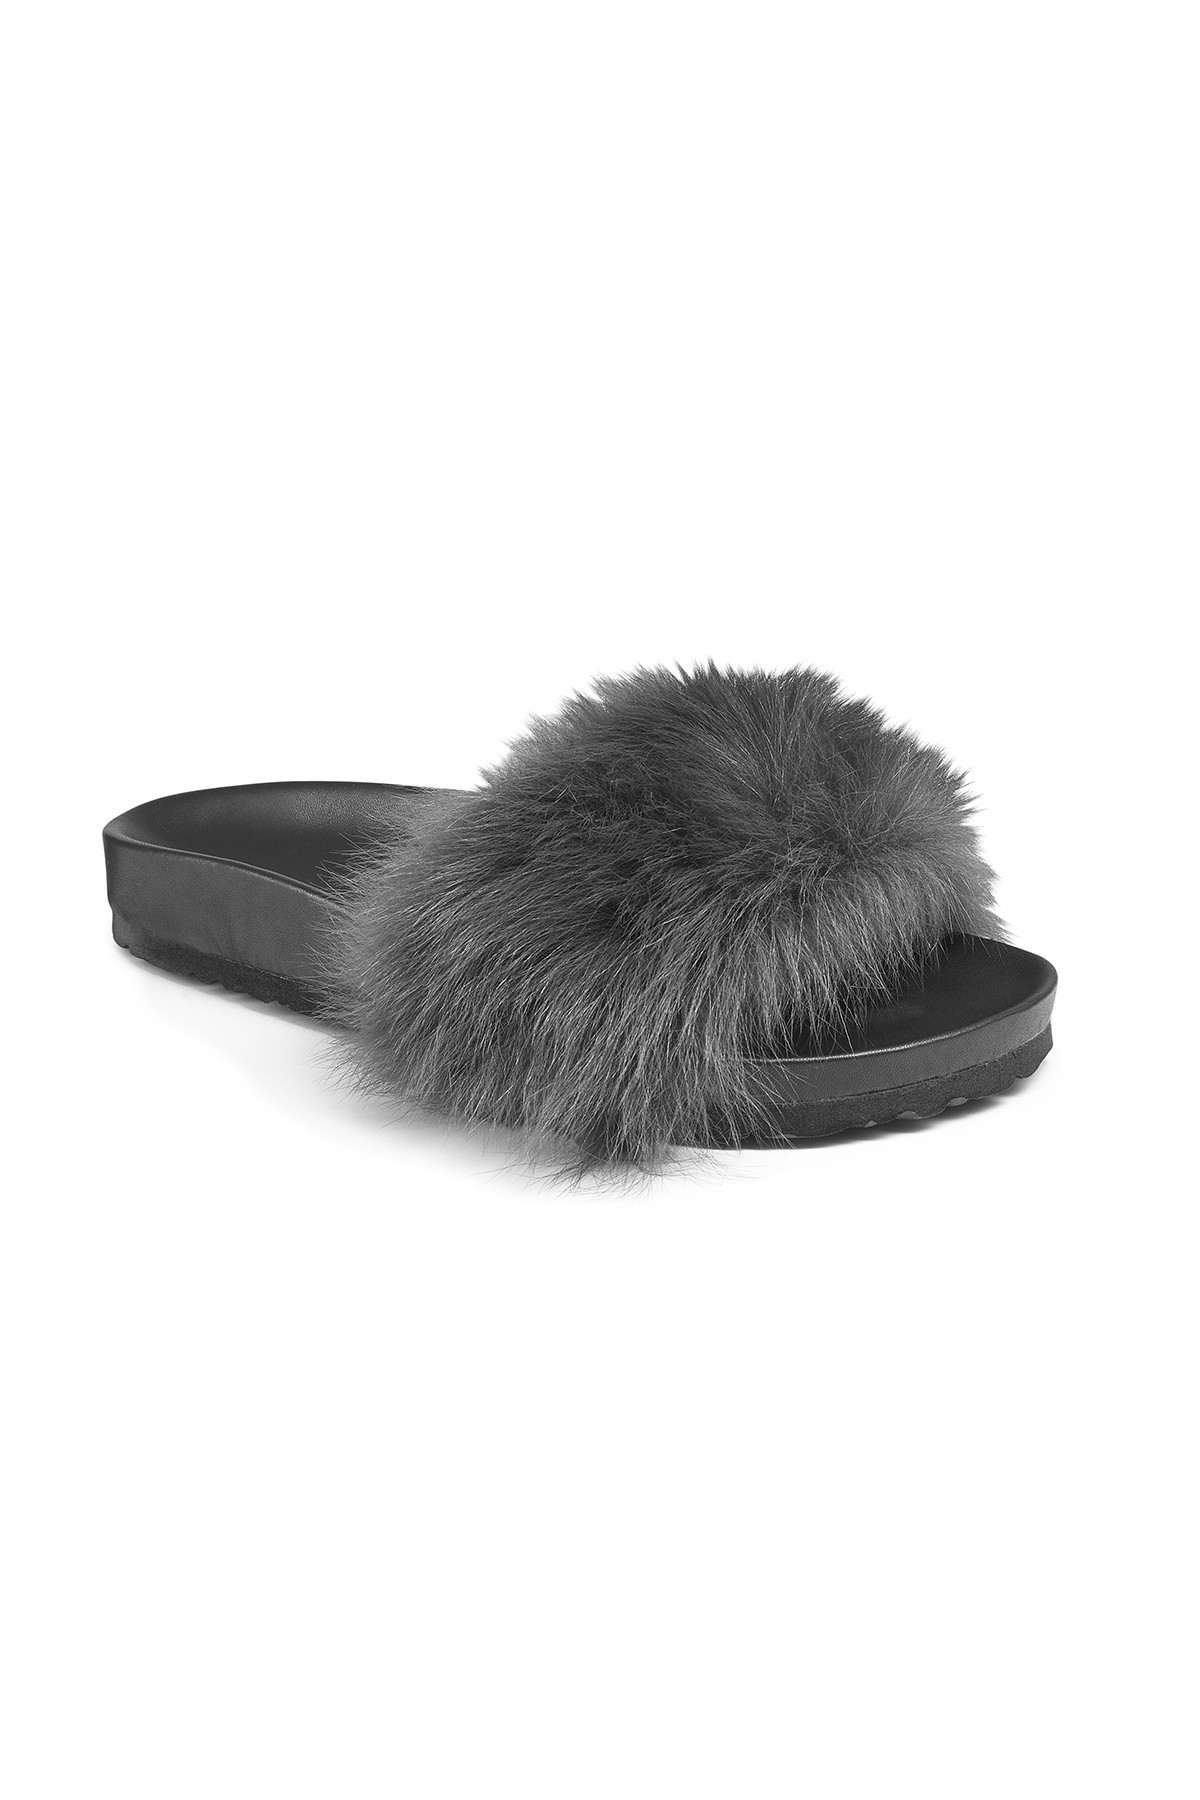 Toscana Charcoal Shearling Slides